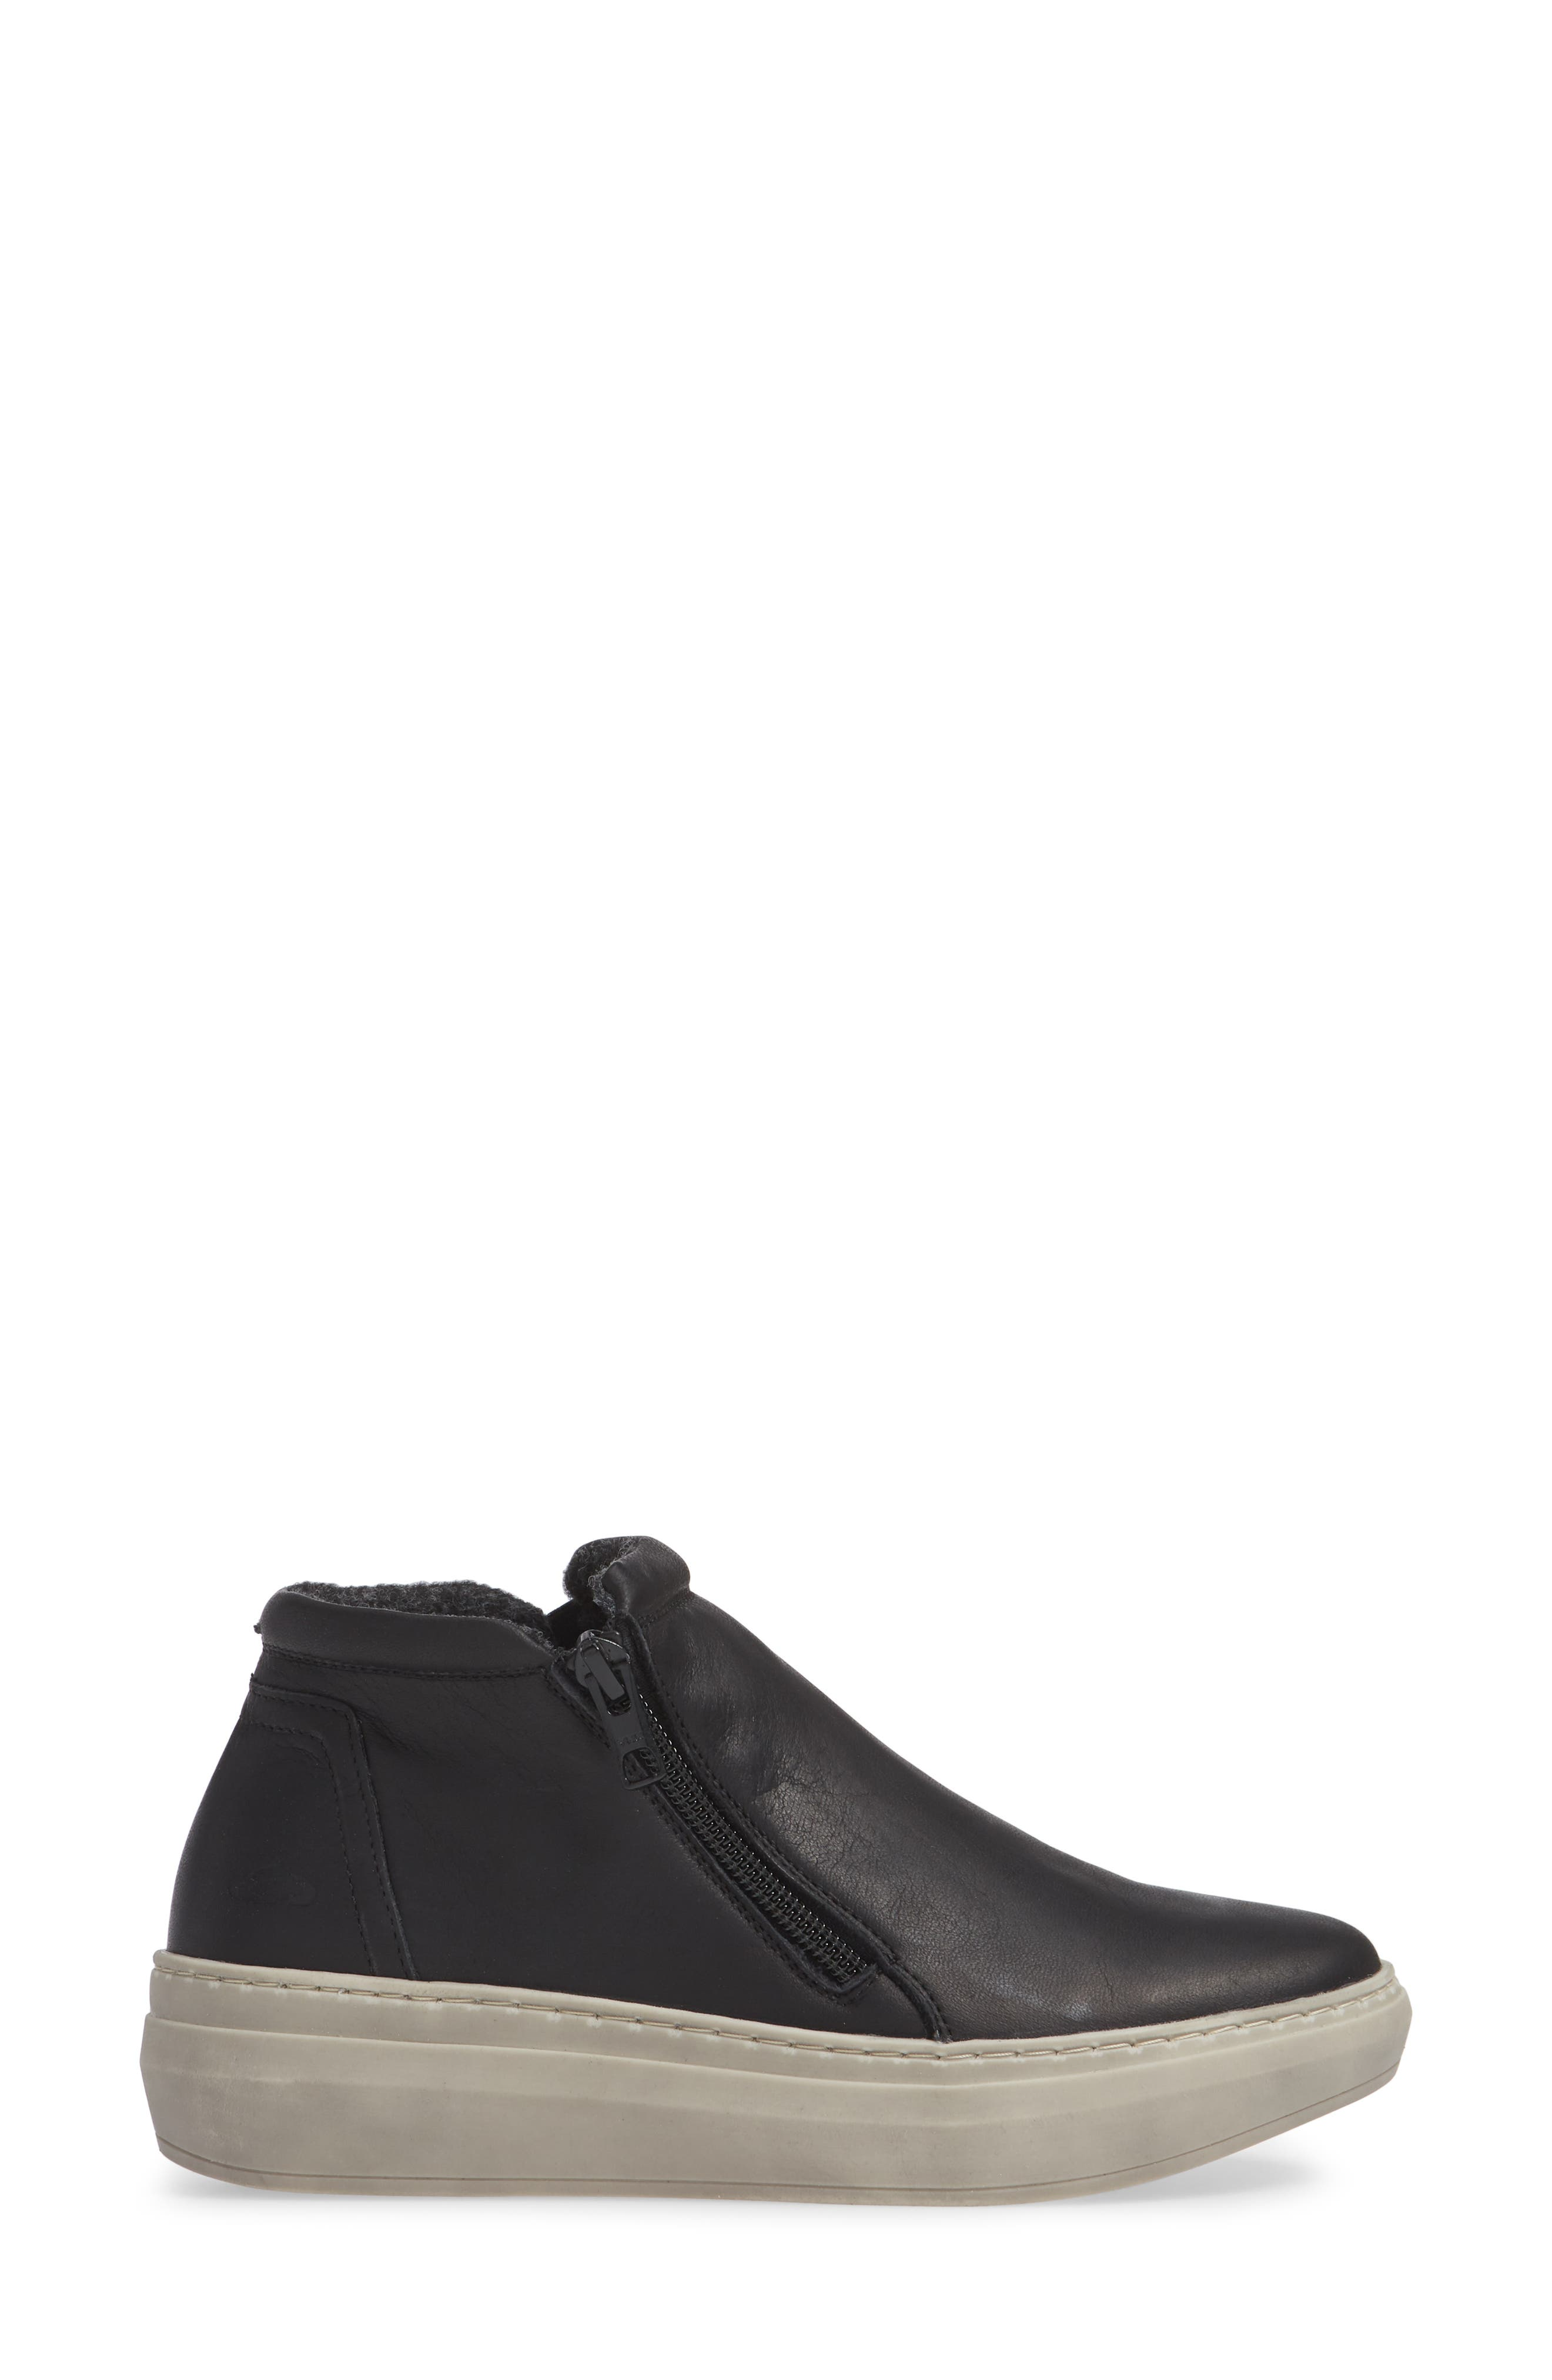 CLOUD,                             Qupid Wool Lined Sneaker,                             Alternate thumbnail 3, color,                             BLACK LEATHER